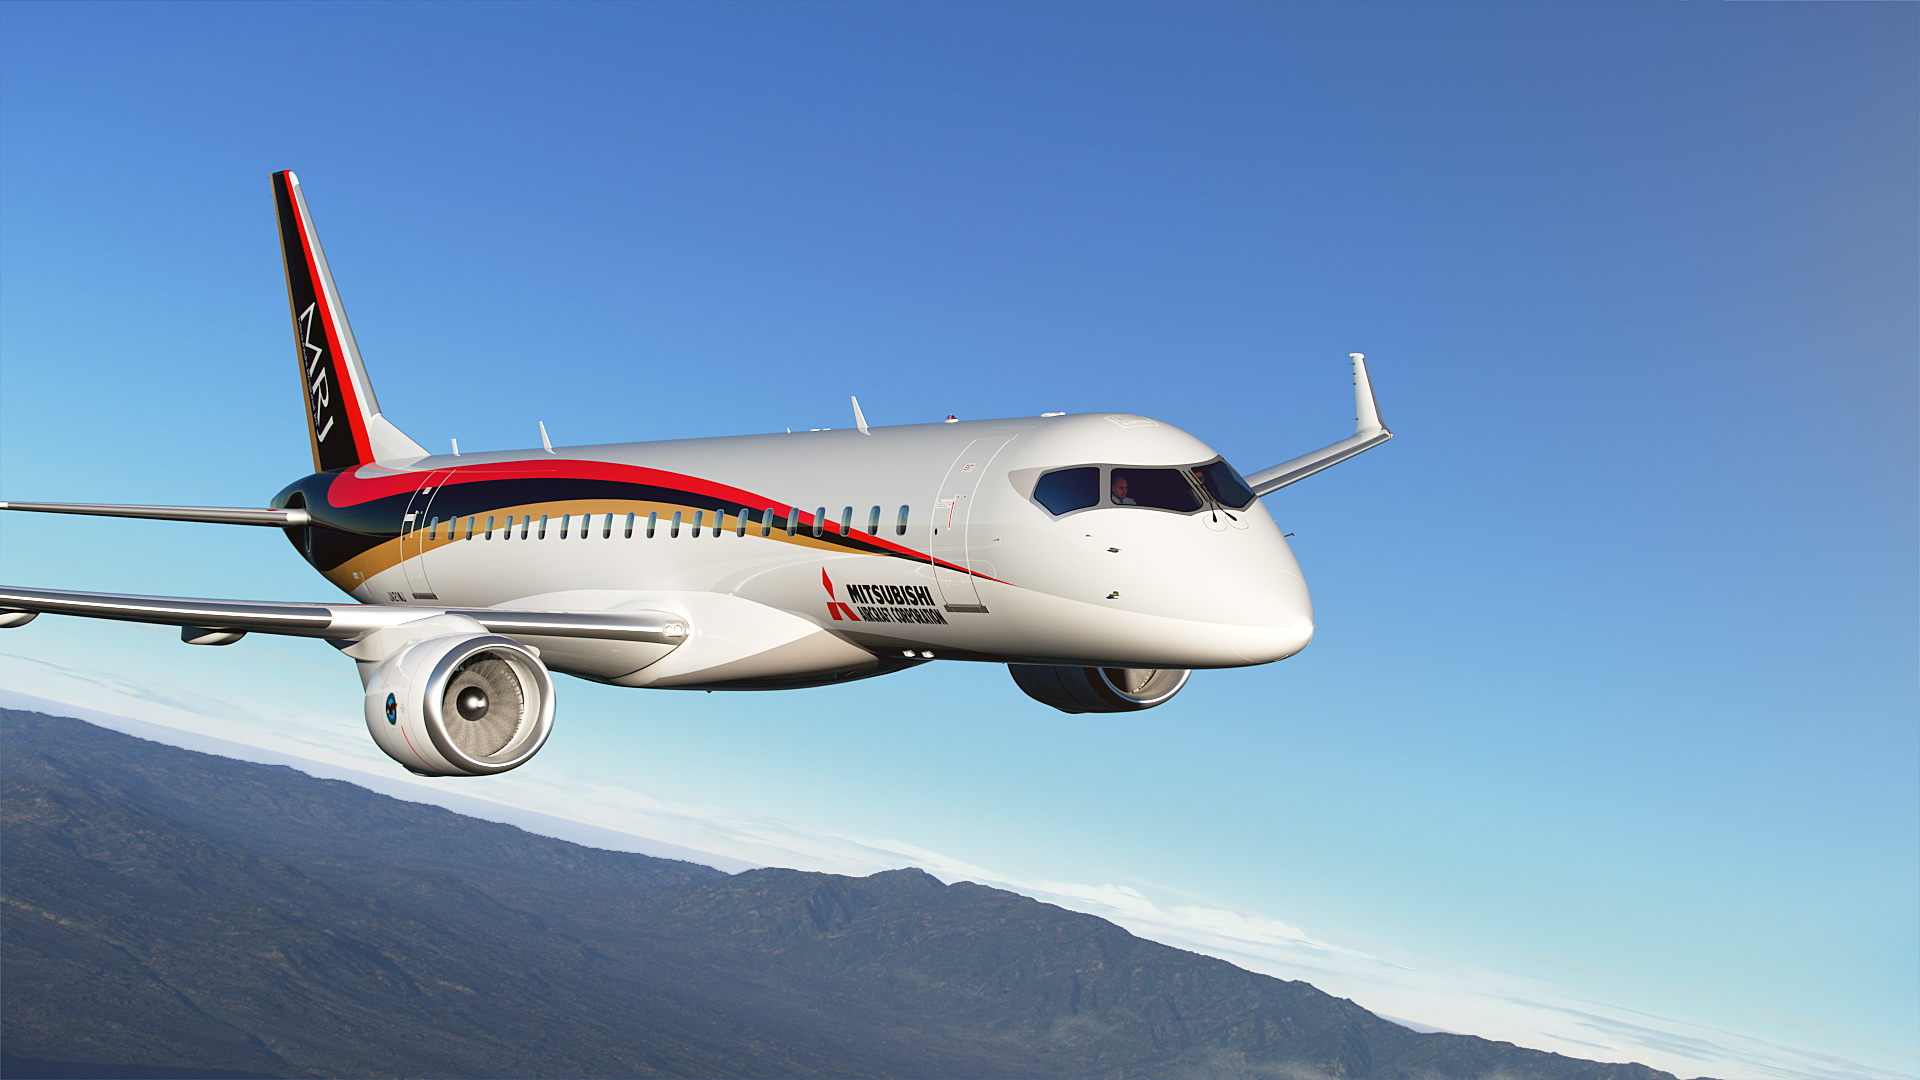 The Mitsubishi MRJ90 test aircraft made its historic first test flight on November 11, 2015 in Nagoya, Japan. The MRJ is a next generation design that emphasizes efficiency and passenger comfort, setting a new standard for regional jets.